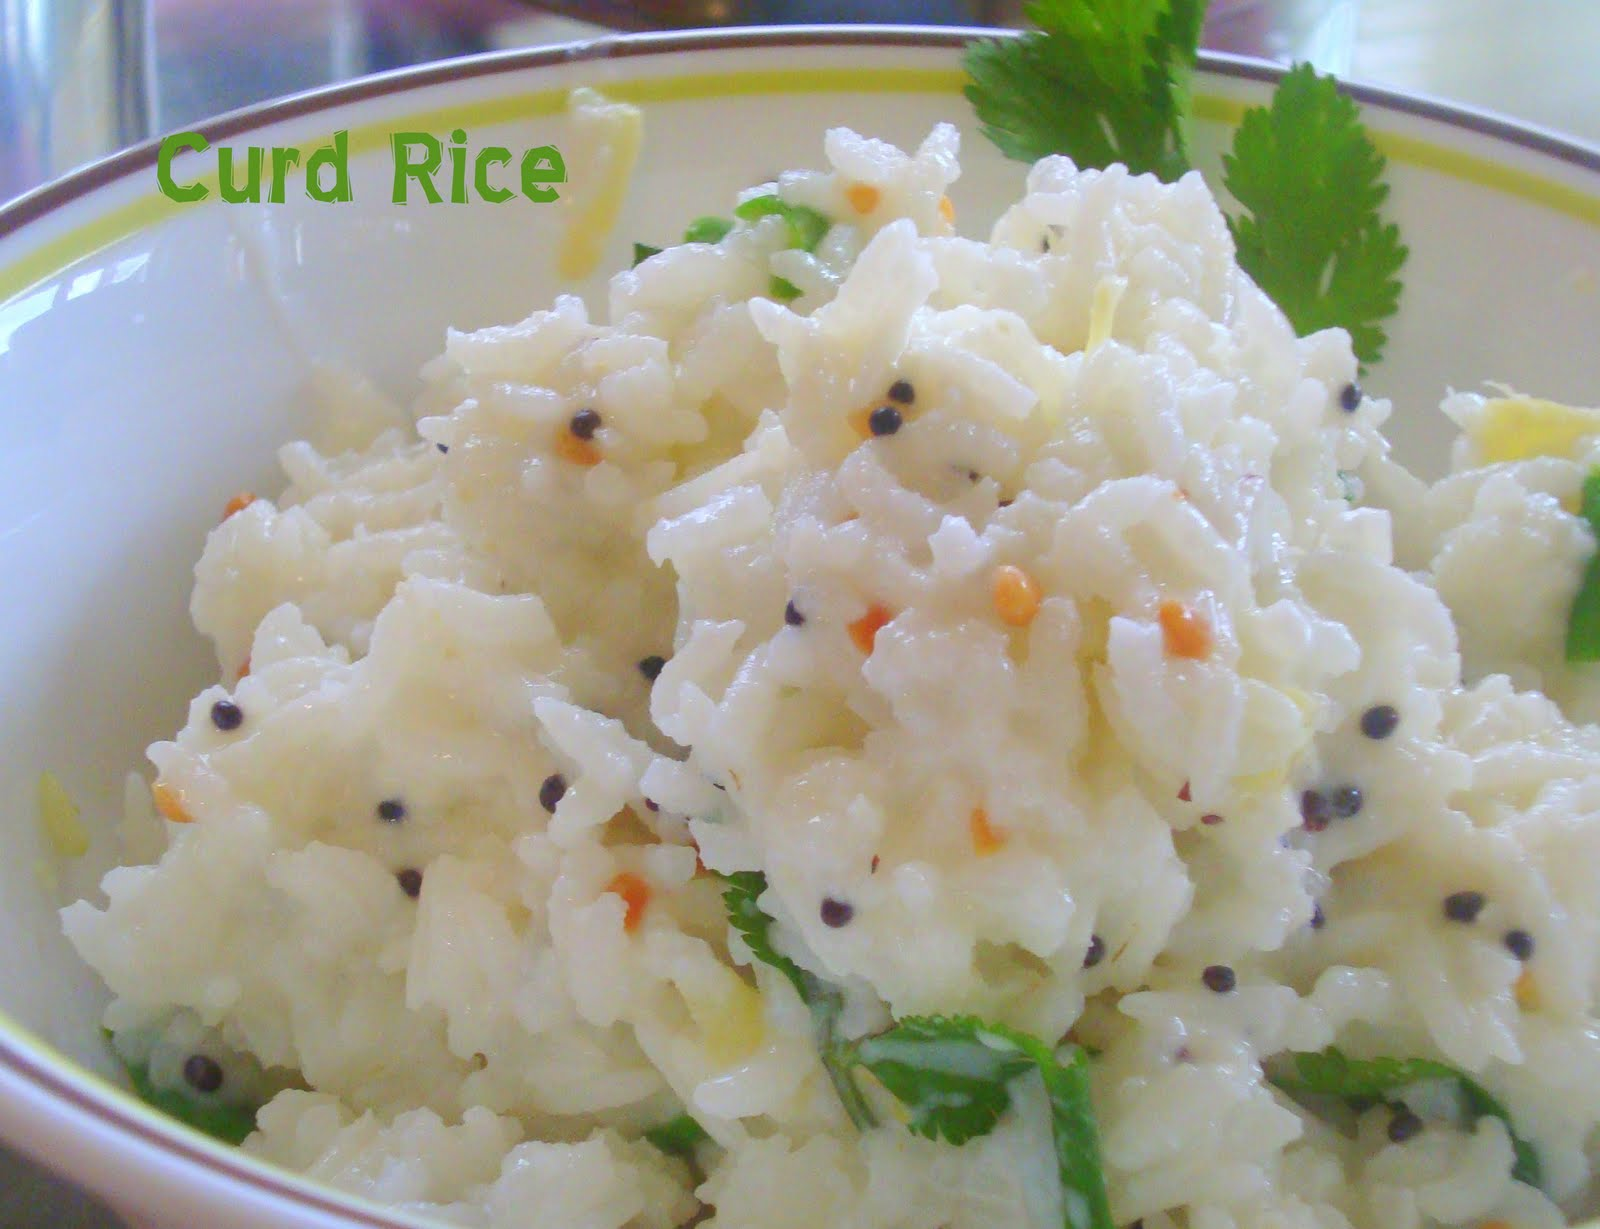 How To Make Curd Rice Curd Rice Recipe | Apps Directories